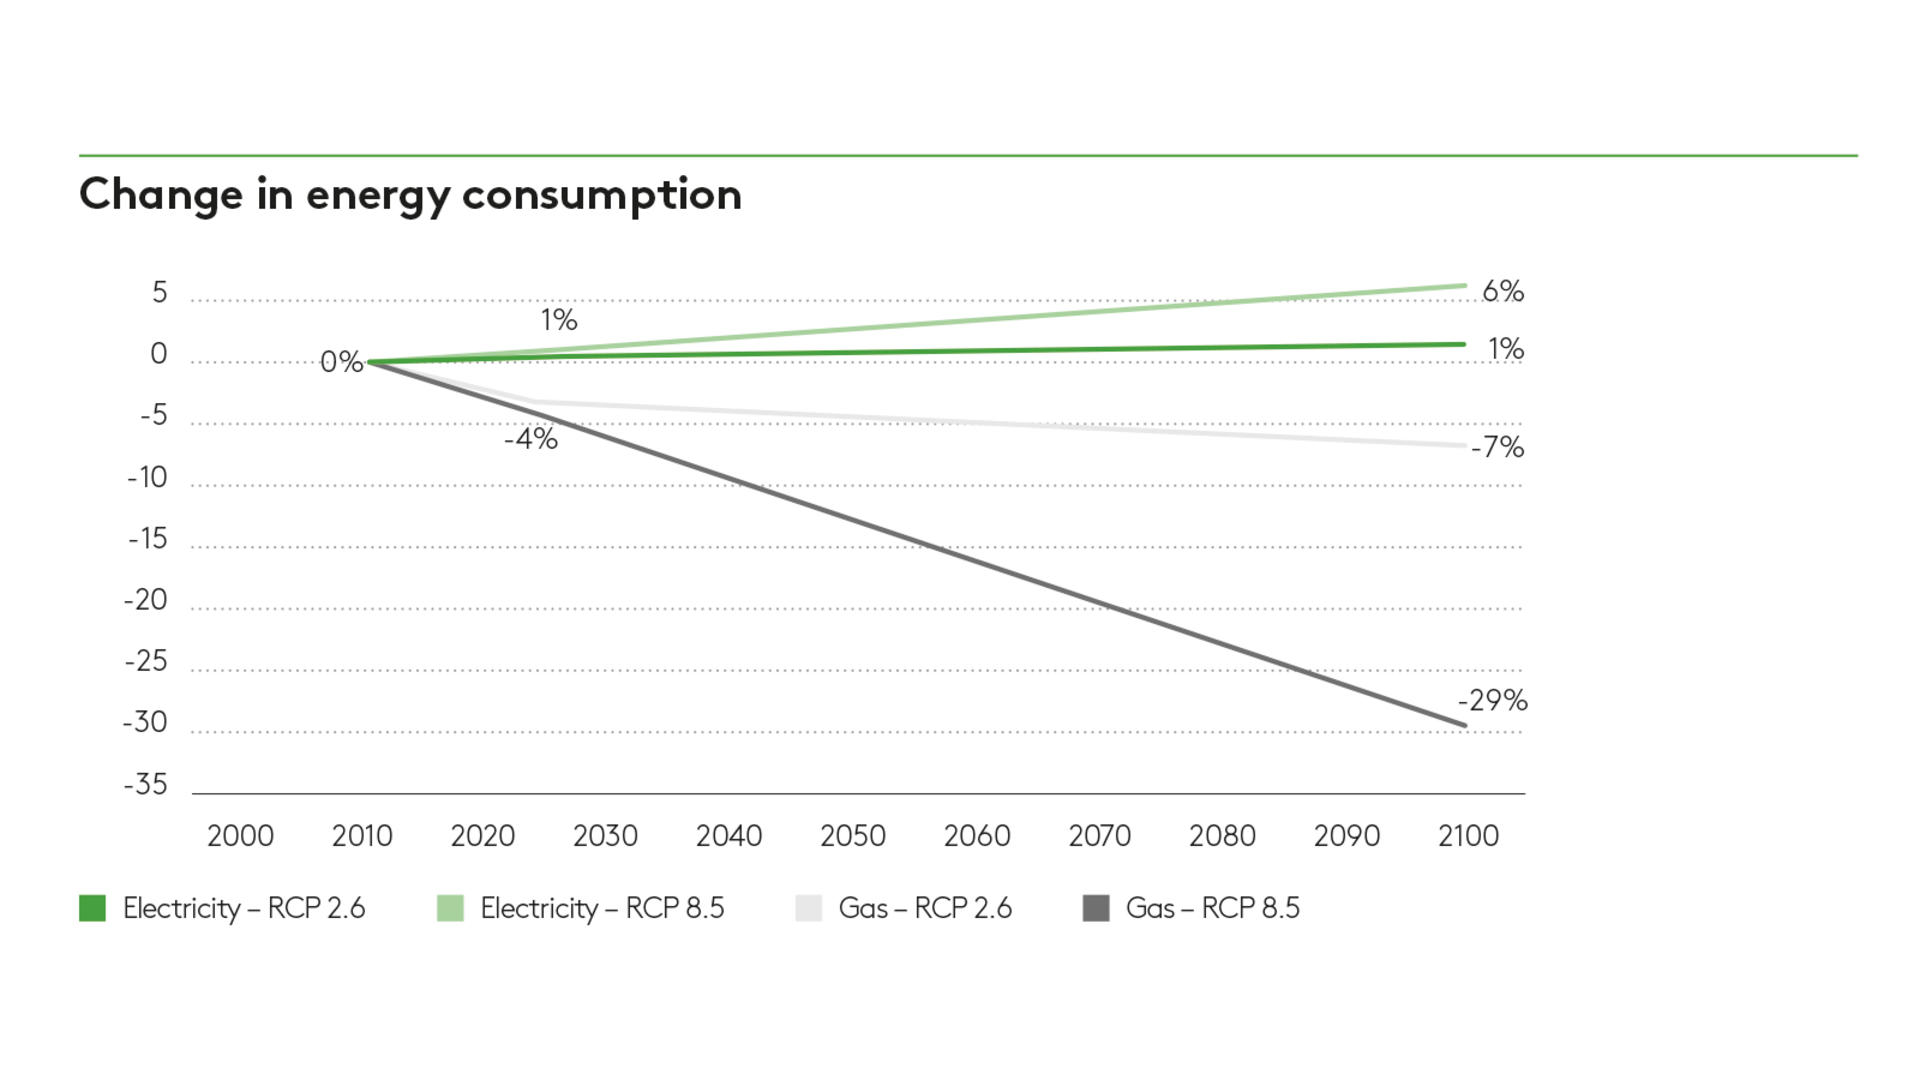 Change in energy consumption